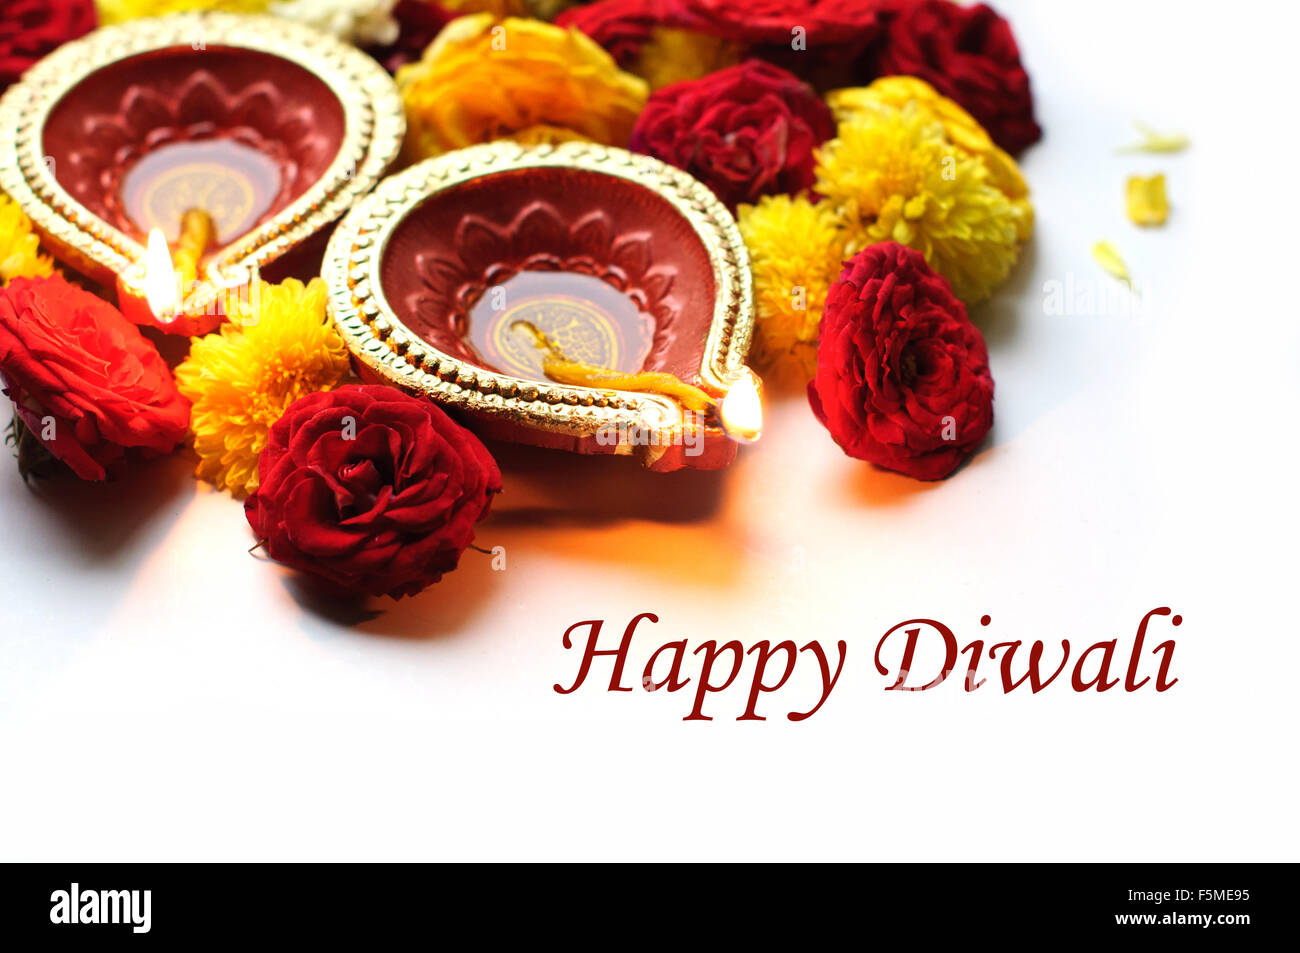 Diwali Diyas on a wooden background with festive flowers and lights Stock Photo